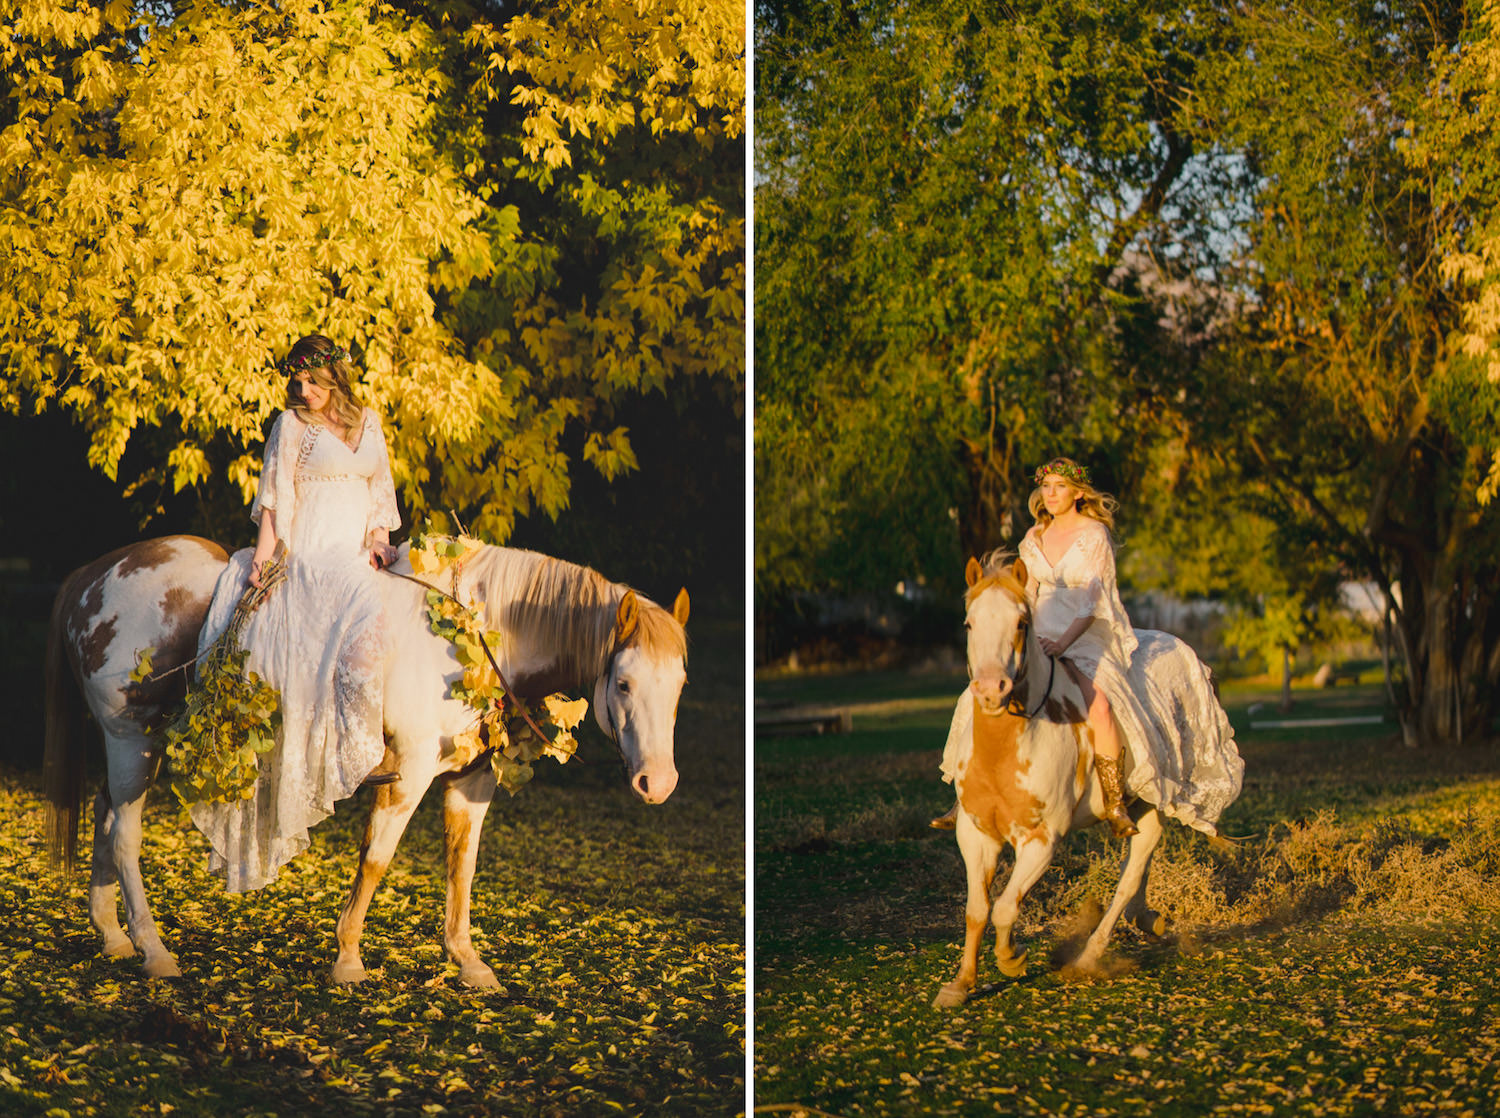 Equestrian bridal session bride on horse with yellow flowers and leaves photo